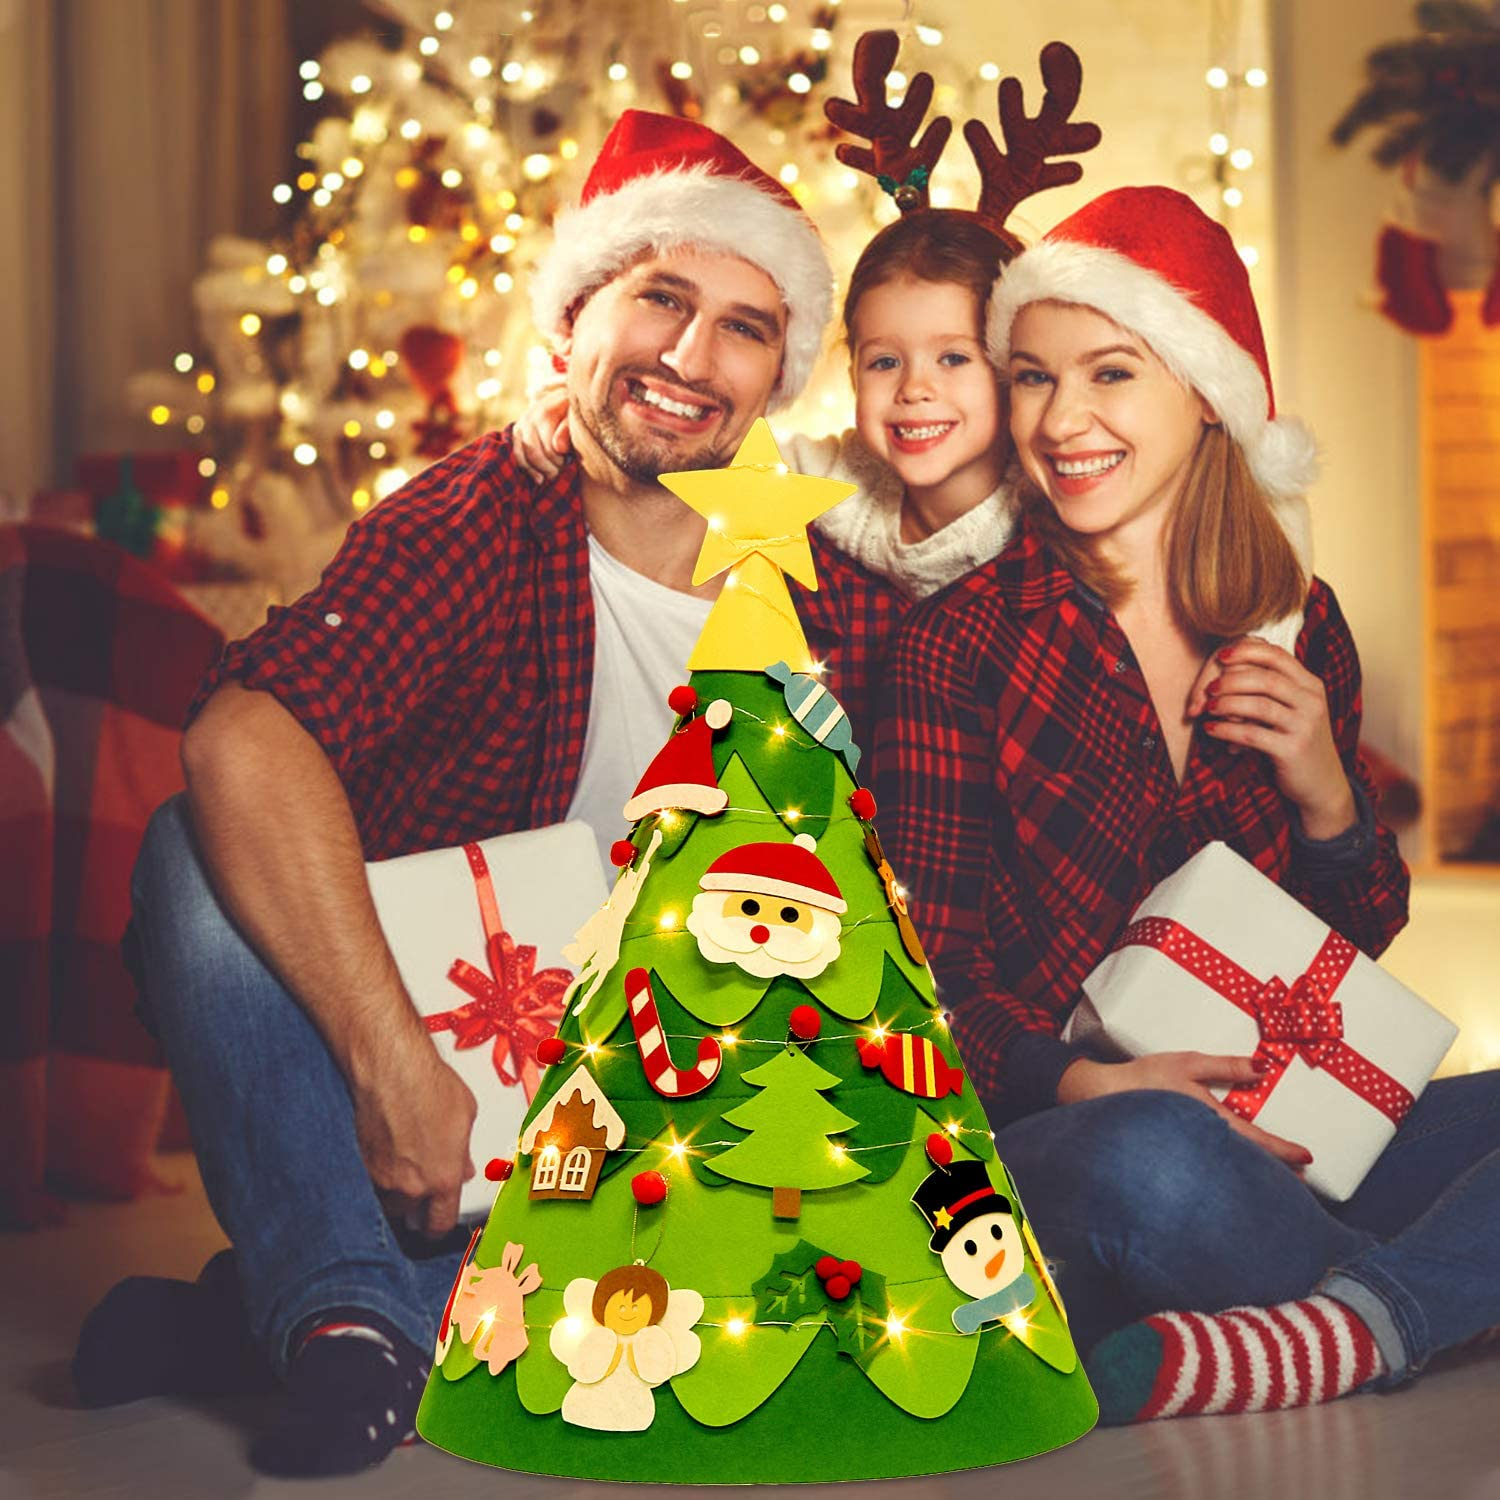 Outgeek 2.3Ft DIY Xmas Tree with 28PCS Detachable Ornaments and Light String Xmas Gifts for Kids Toddler Christmas Decoration 3D Felt Christmas Tree 3D Christmas Tree